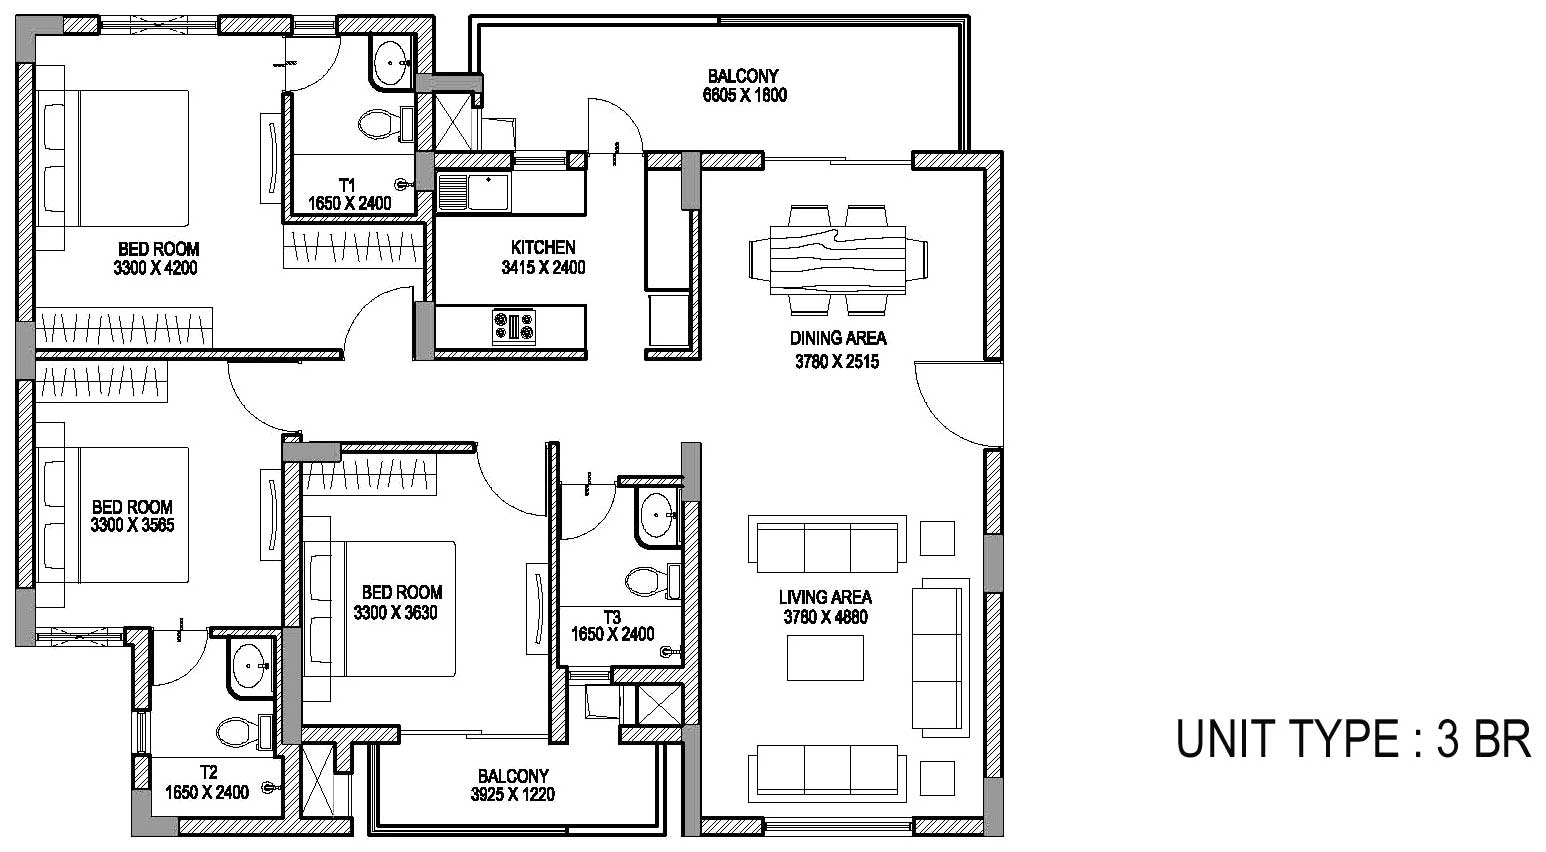 House Plans For Cottages In Zimbabwe as well Pine Trace moreover Alternating Superman moreover Siteplans together with munity Map. on 1 floor home plans